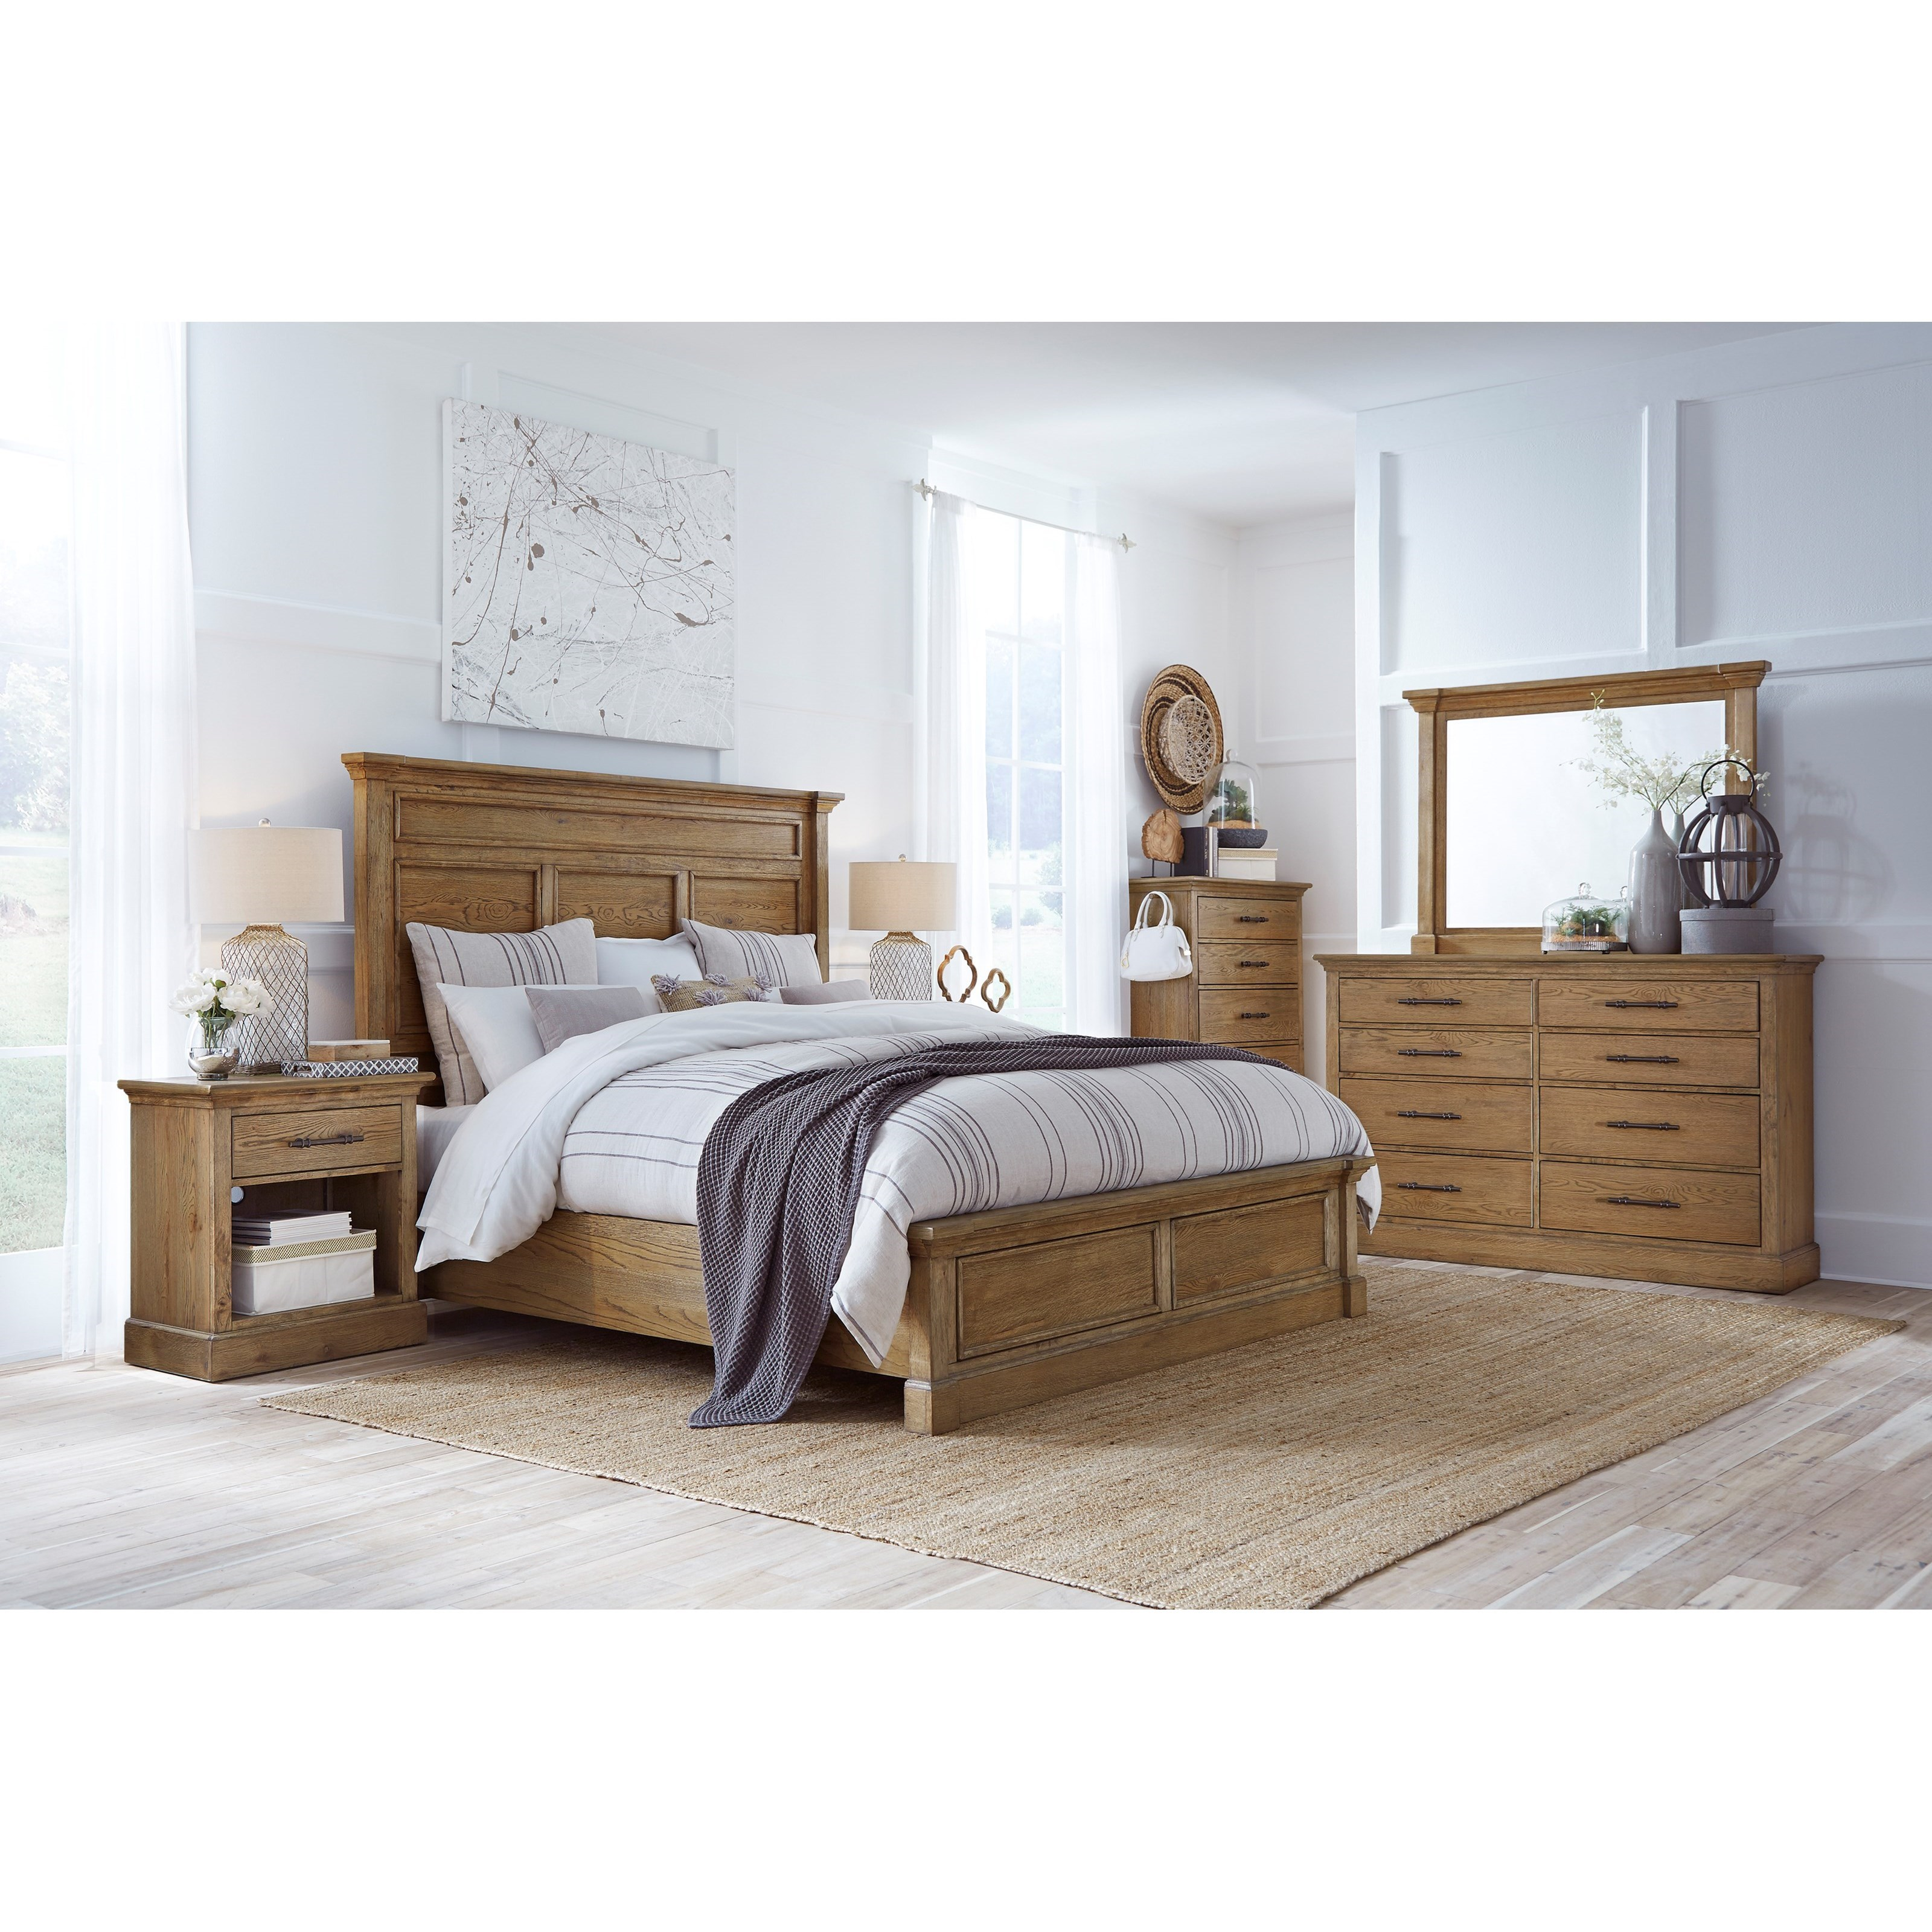 Manchester King Bedroom Group by Aspenhome at Stoney Creek Furniture